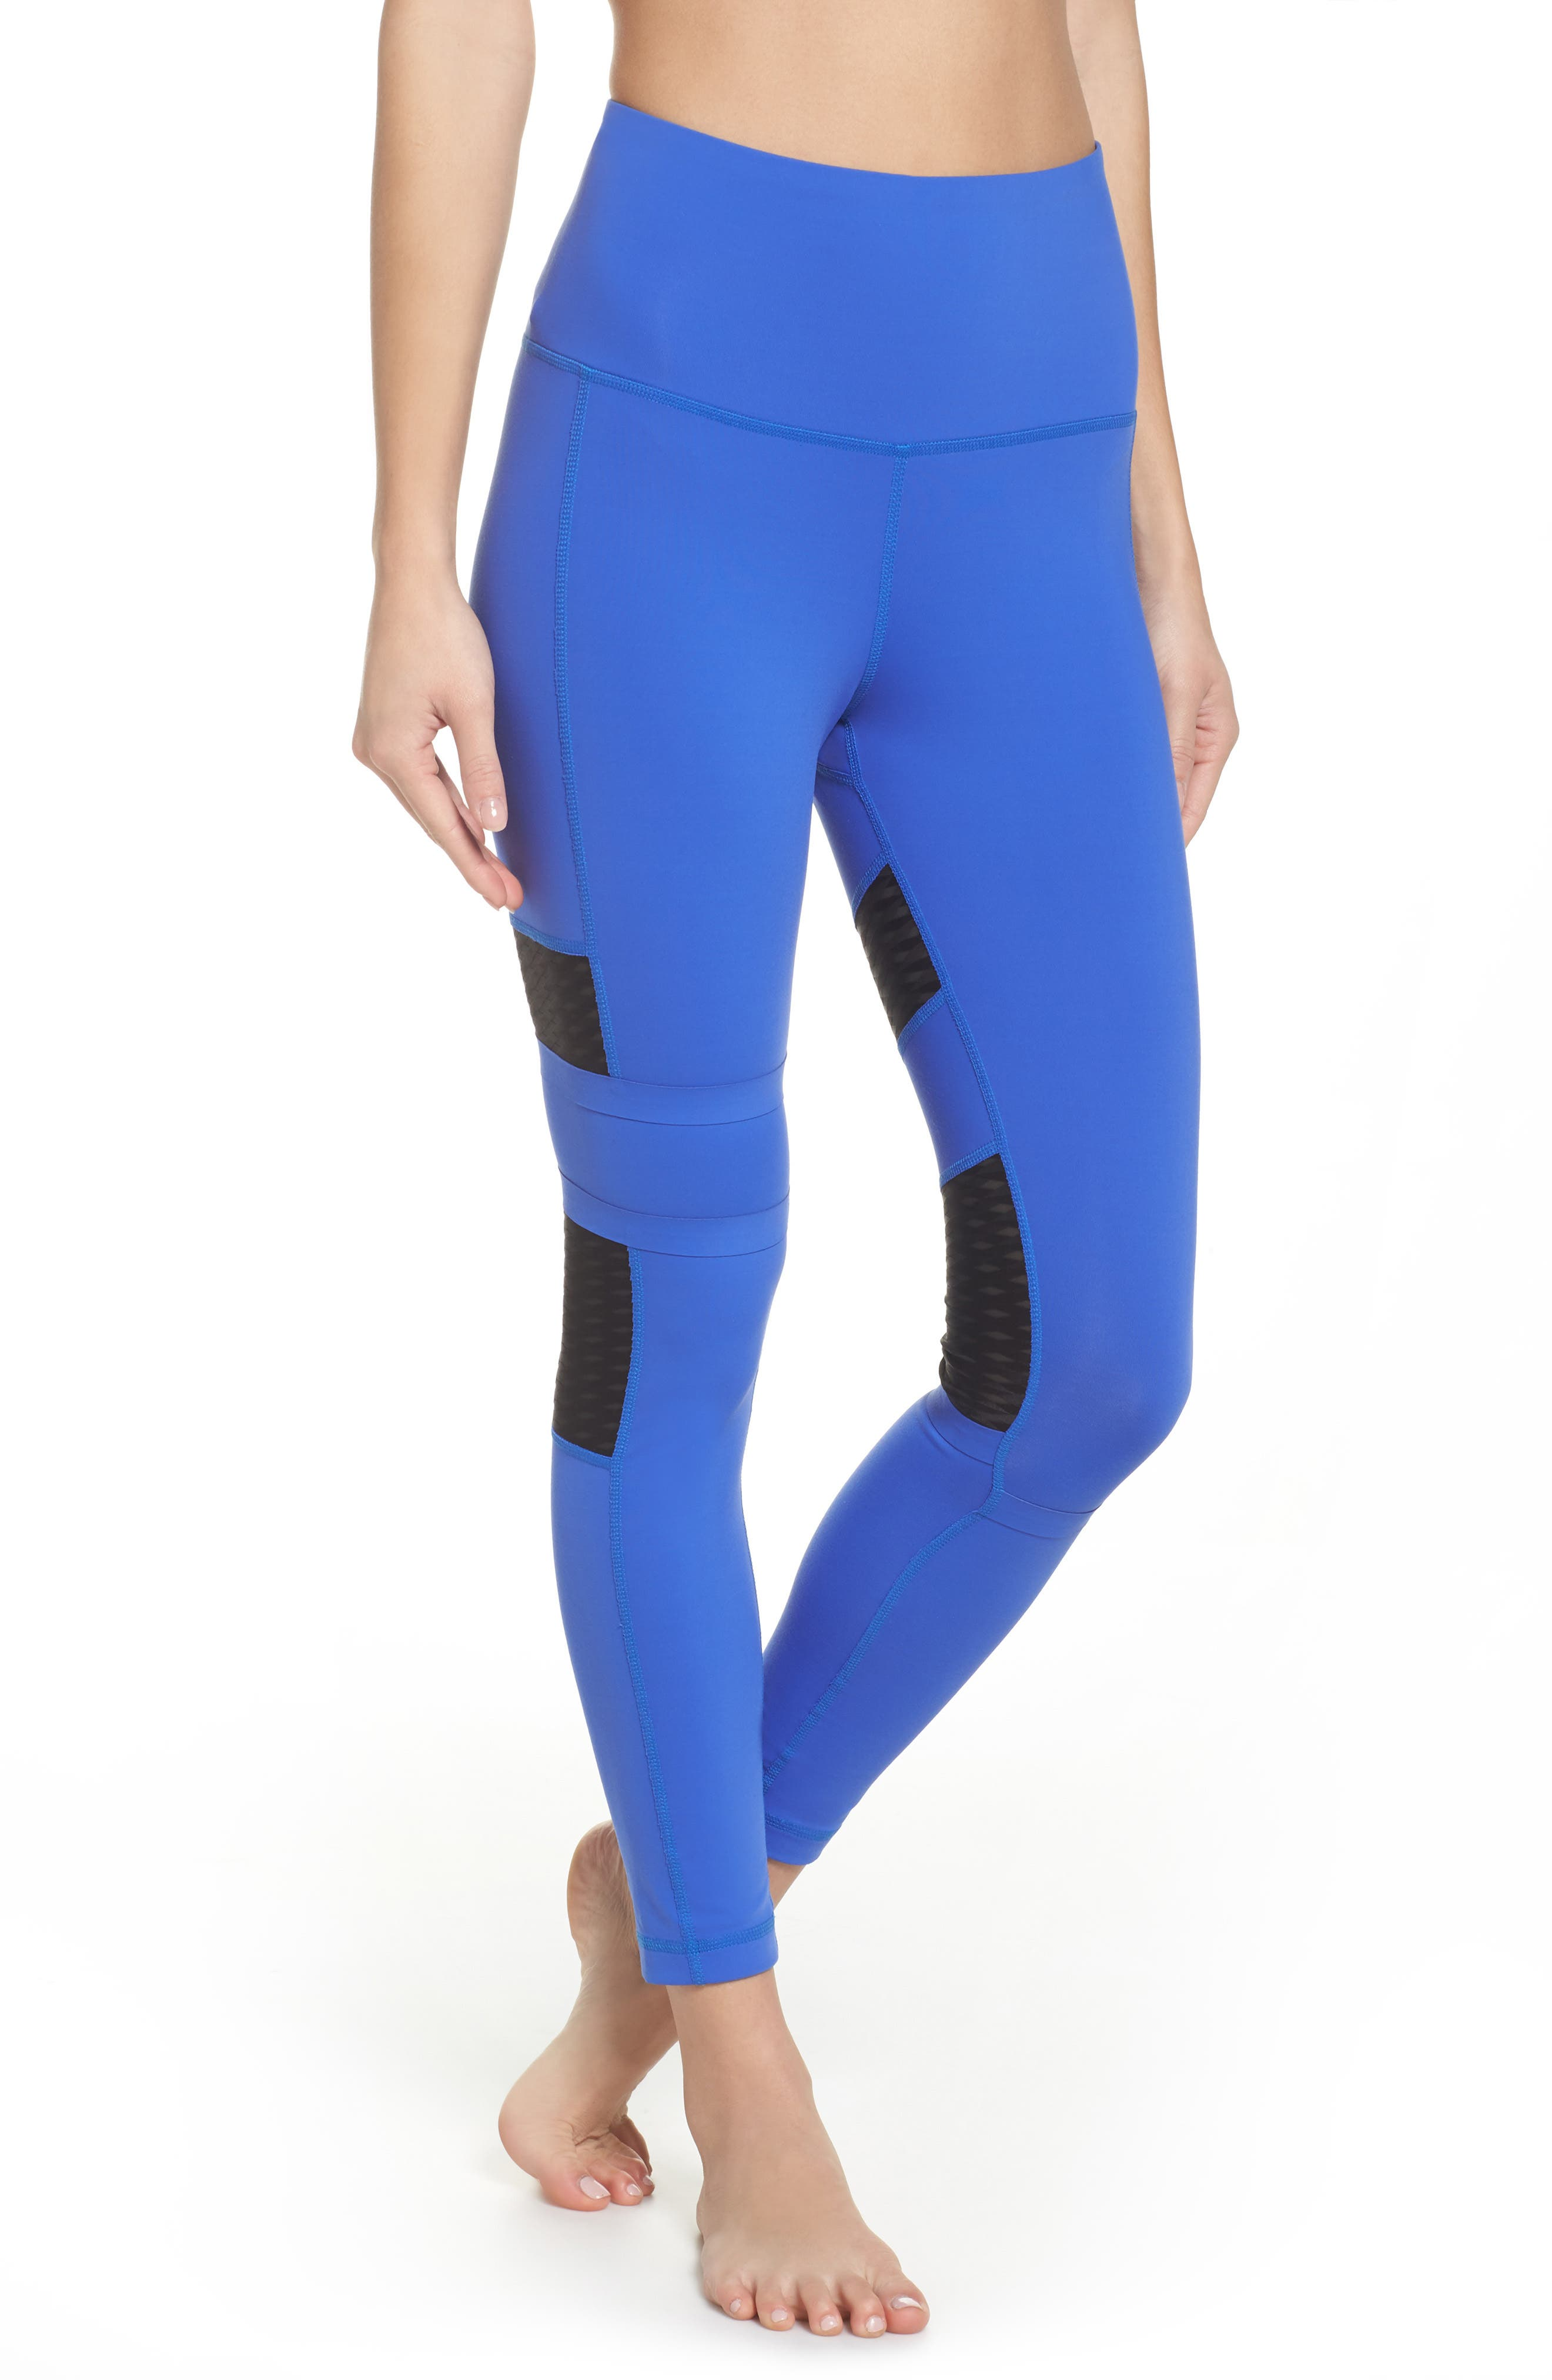 Reebok High Waist Mesh Tights